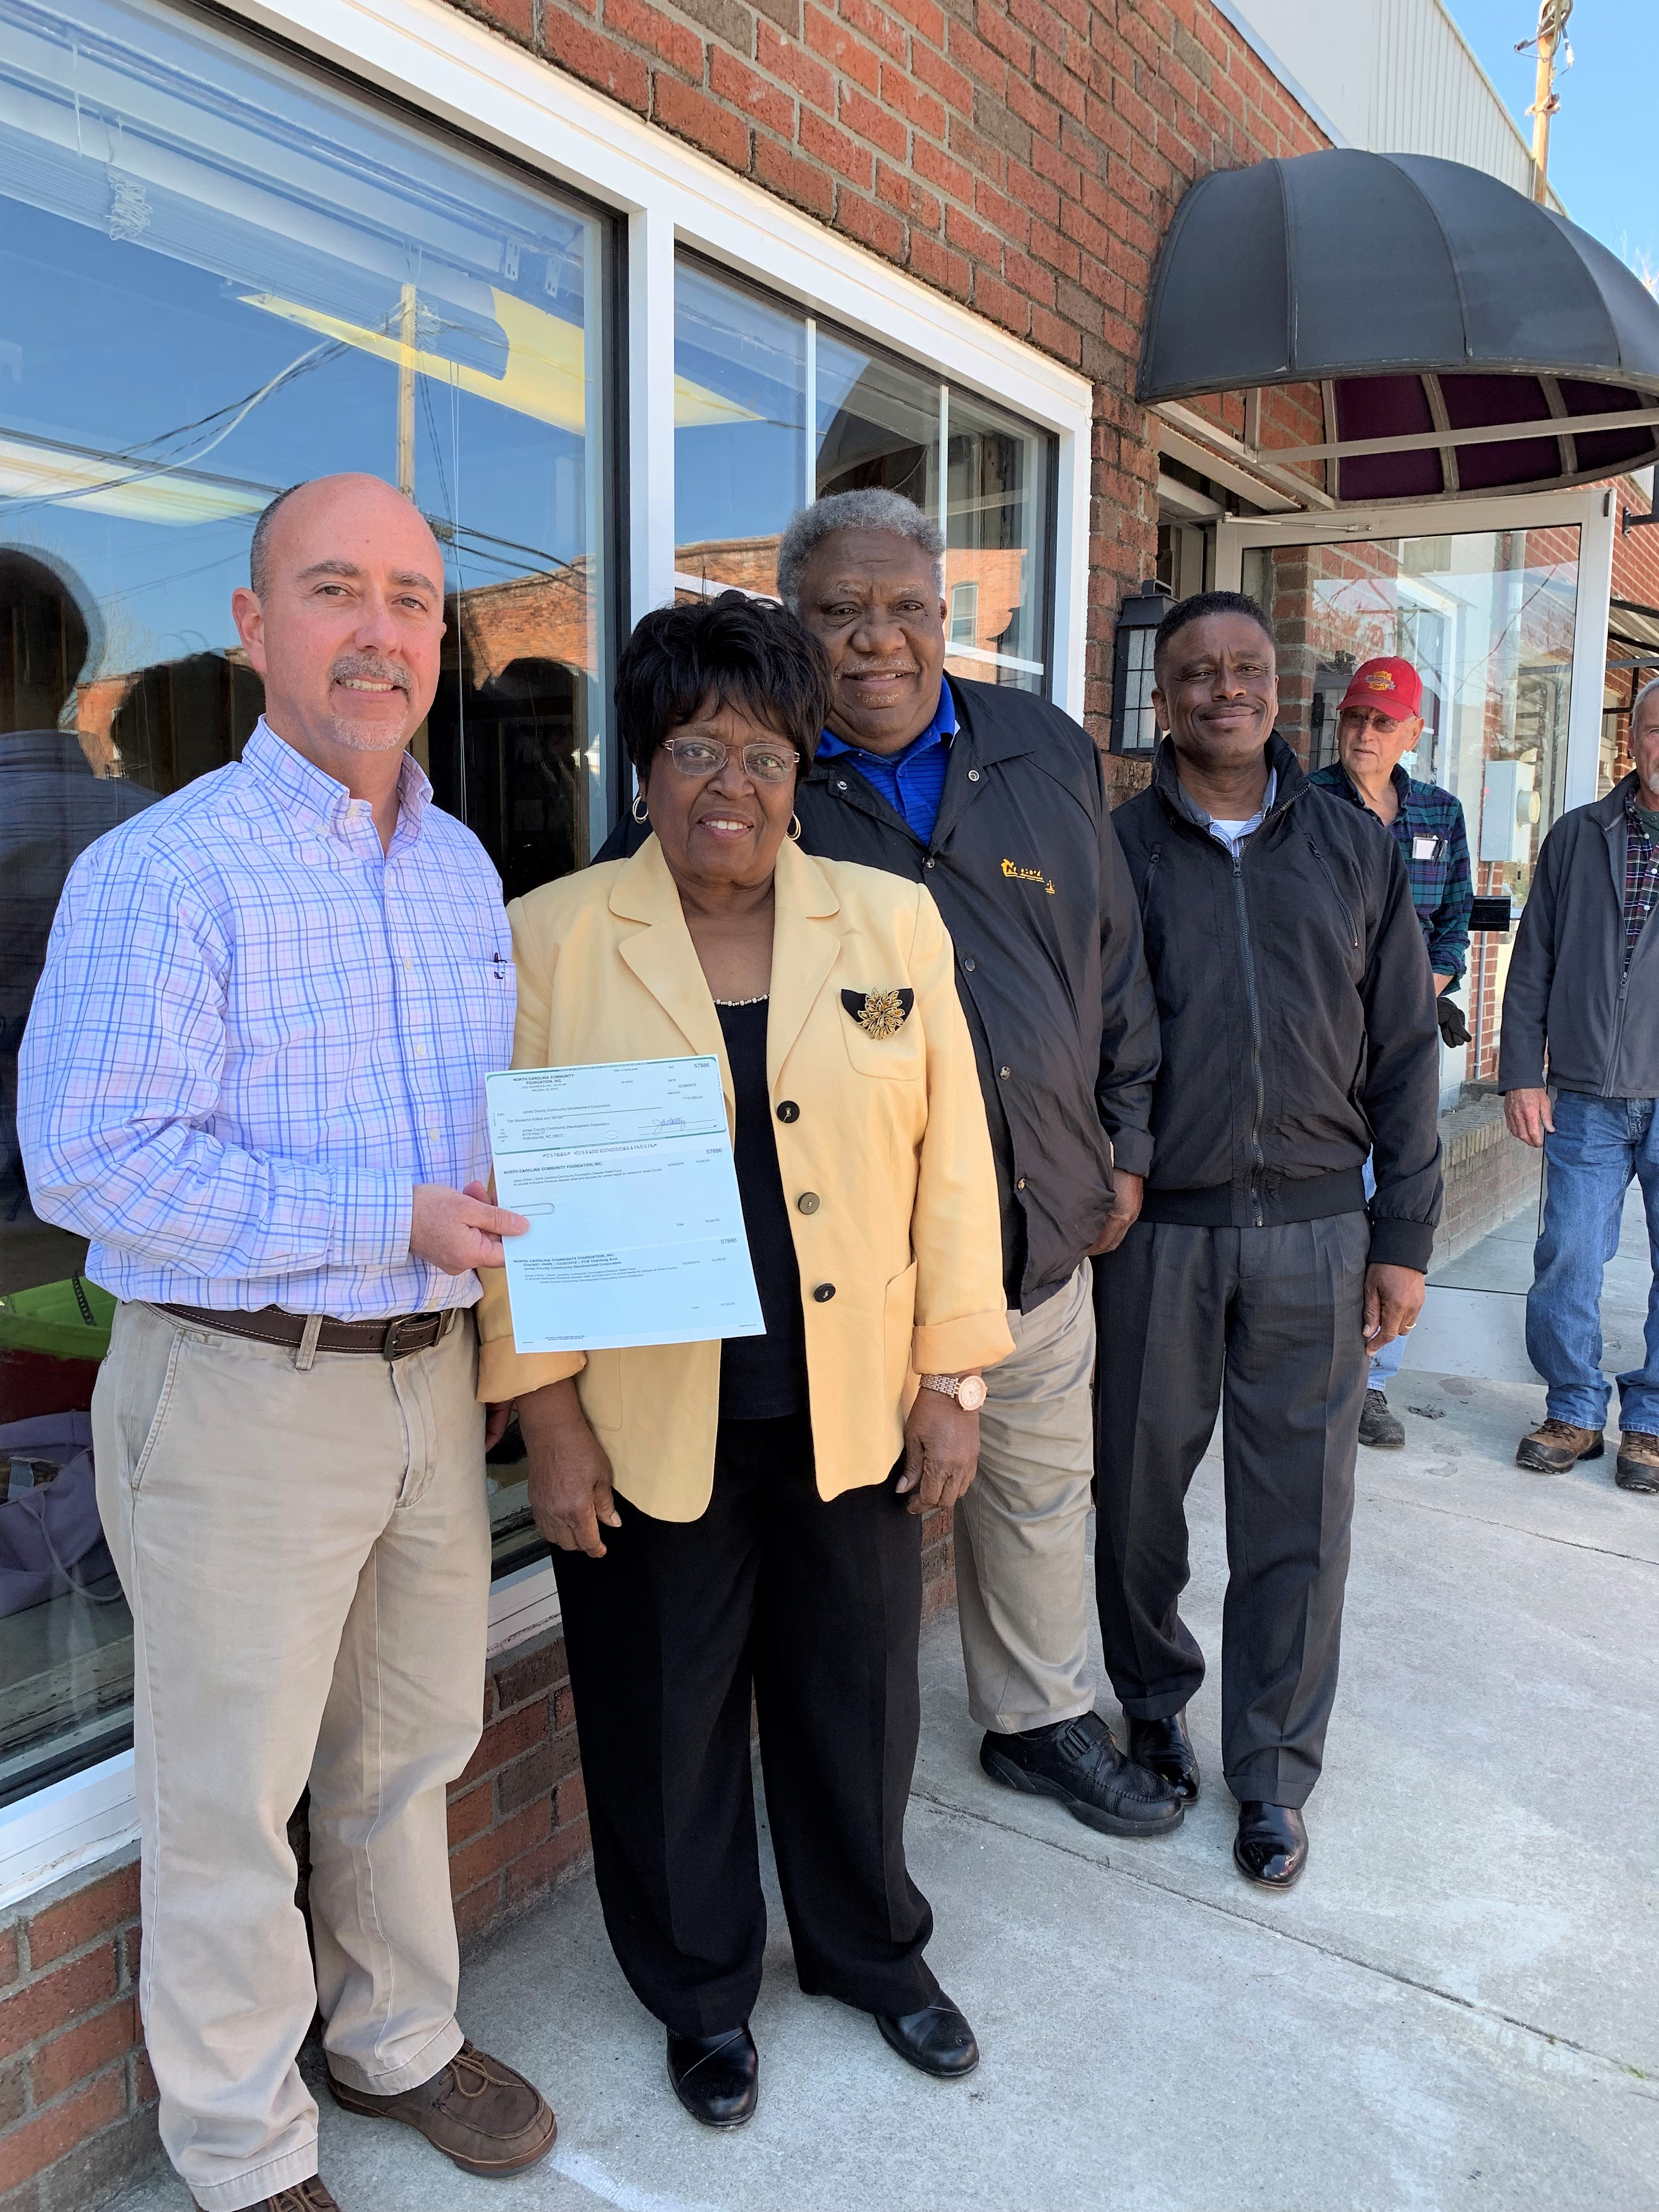 Pictured is the $10,000 grant being awarded to Jones County Community Development Corporation. Left to right are: Charley Jones, Joletha White, Johnny White and Solomon Jones.